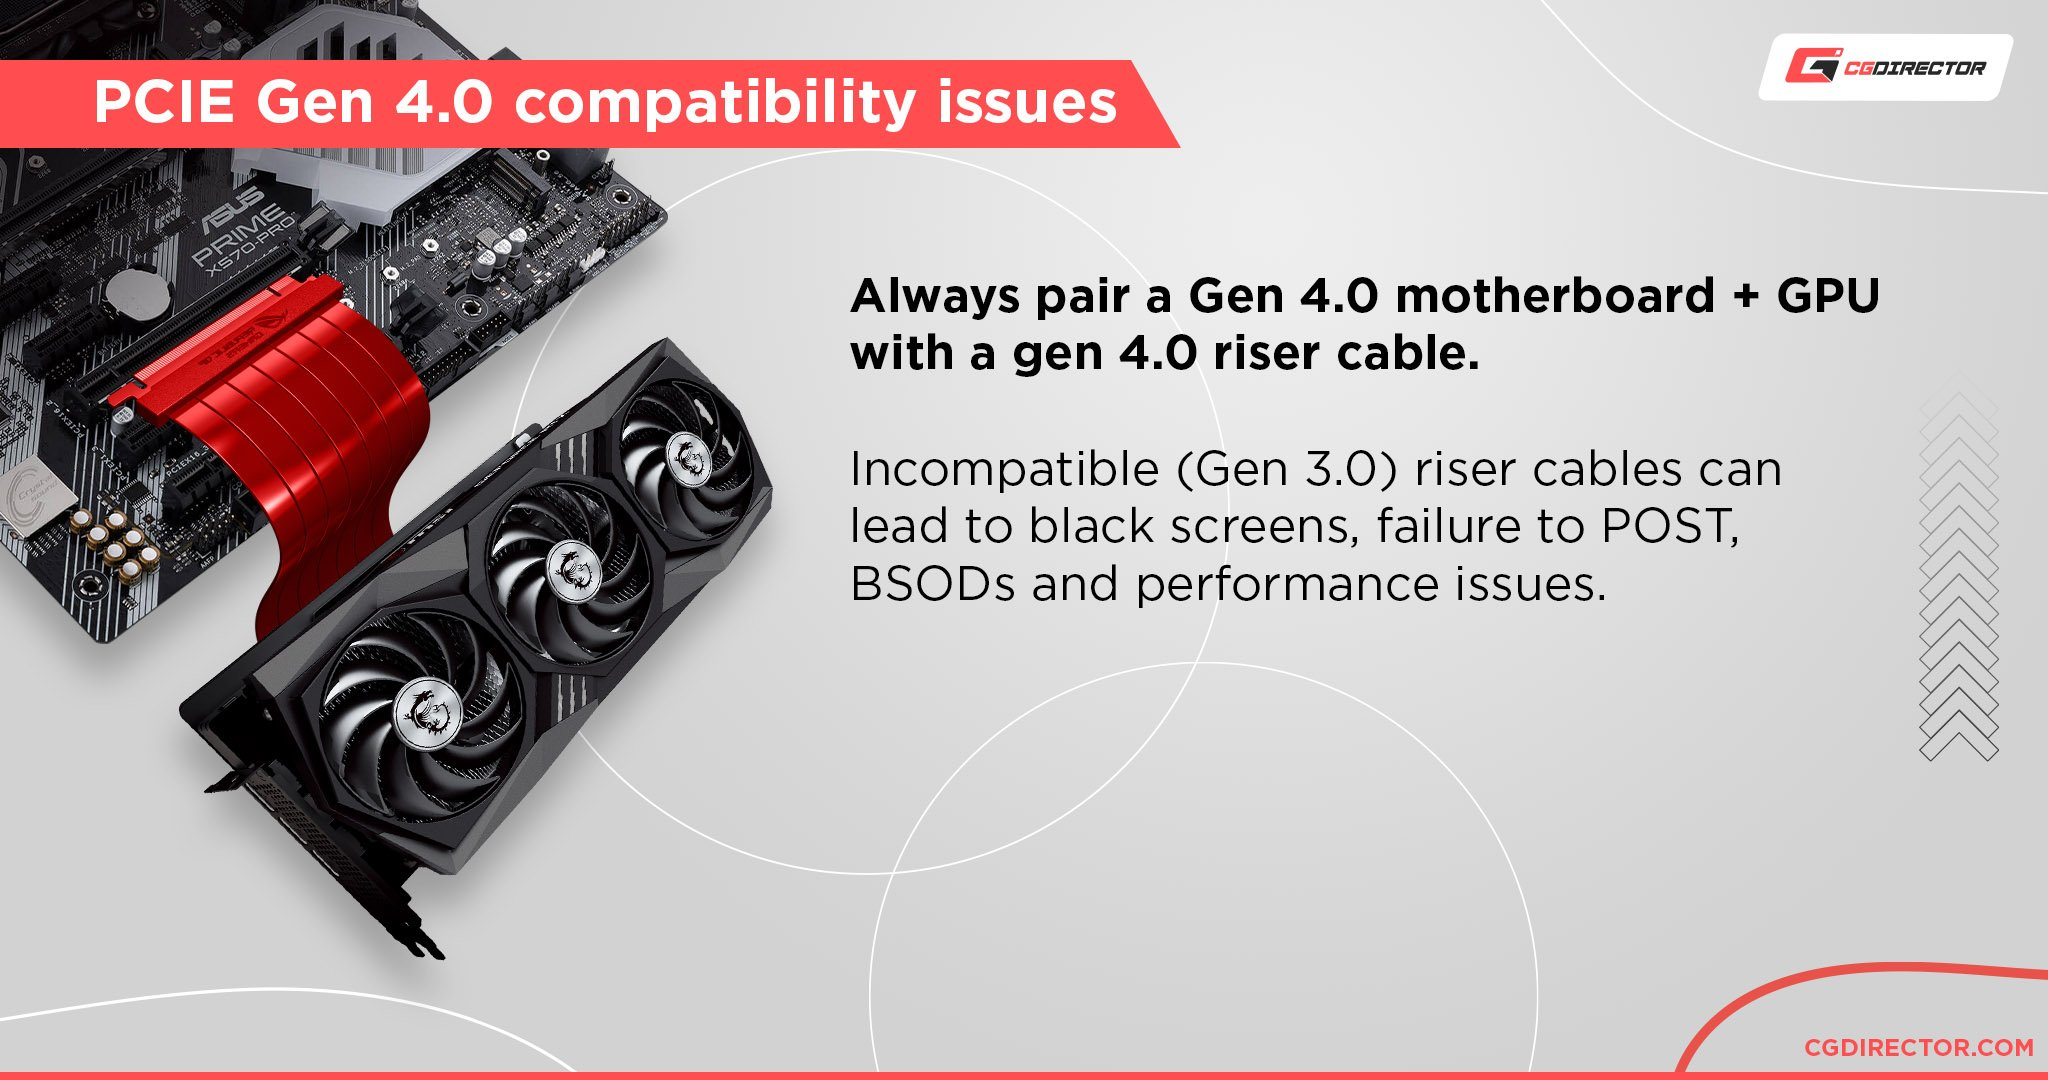 PCIE Gen 4.0 compatibility issues